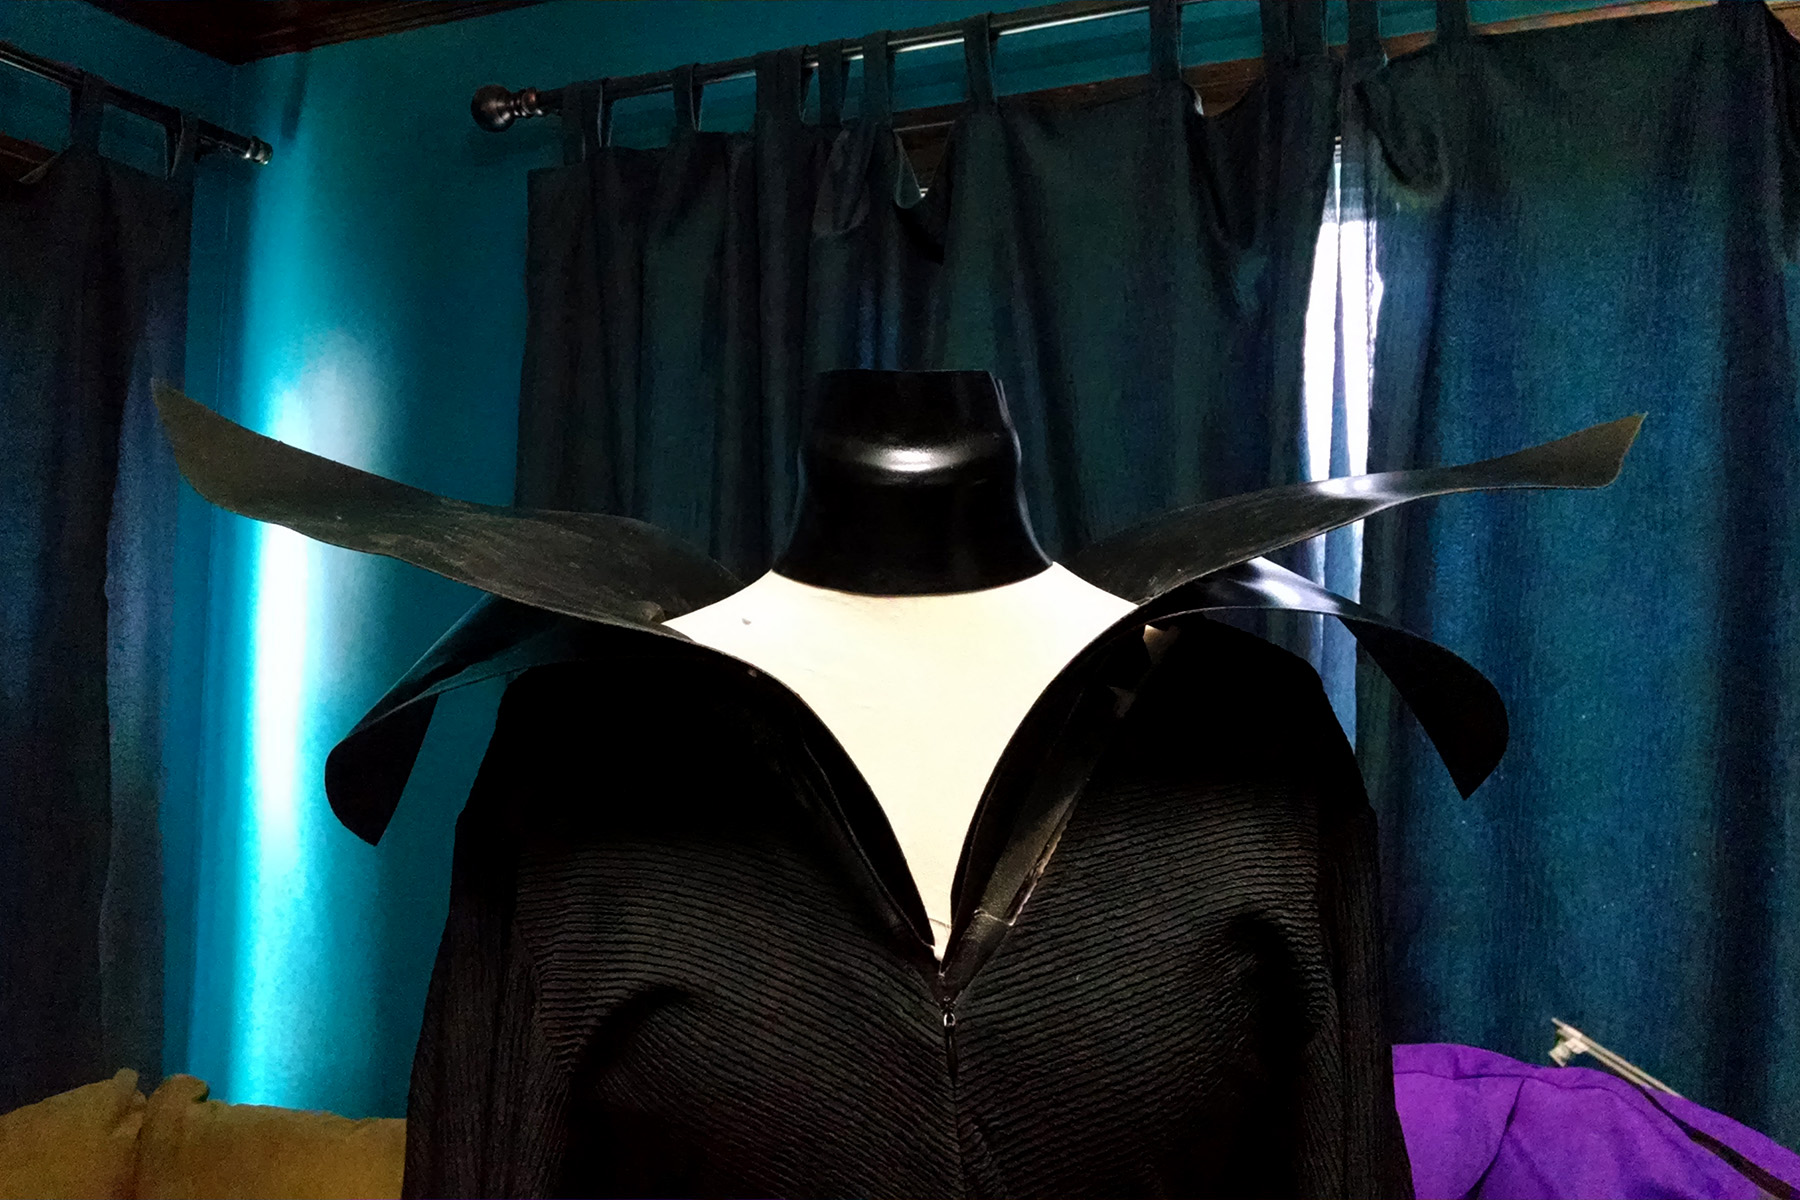 The Collar, Shoulder wings, and gown on a dress form.